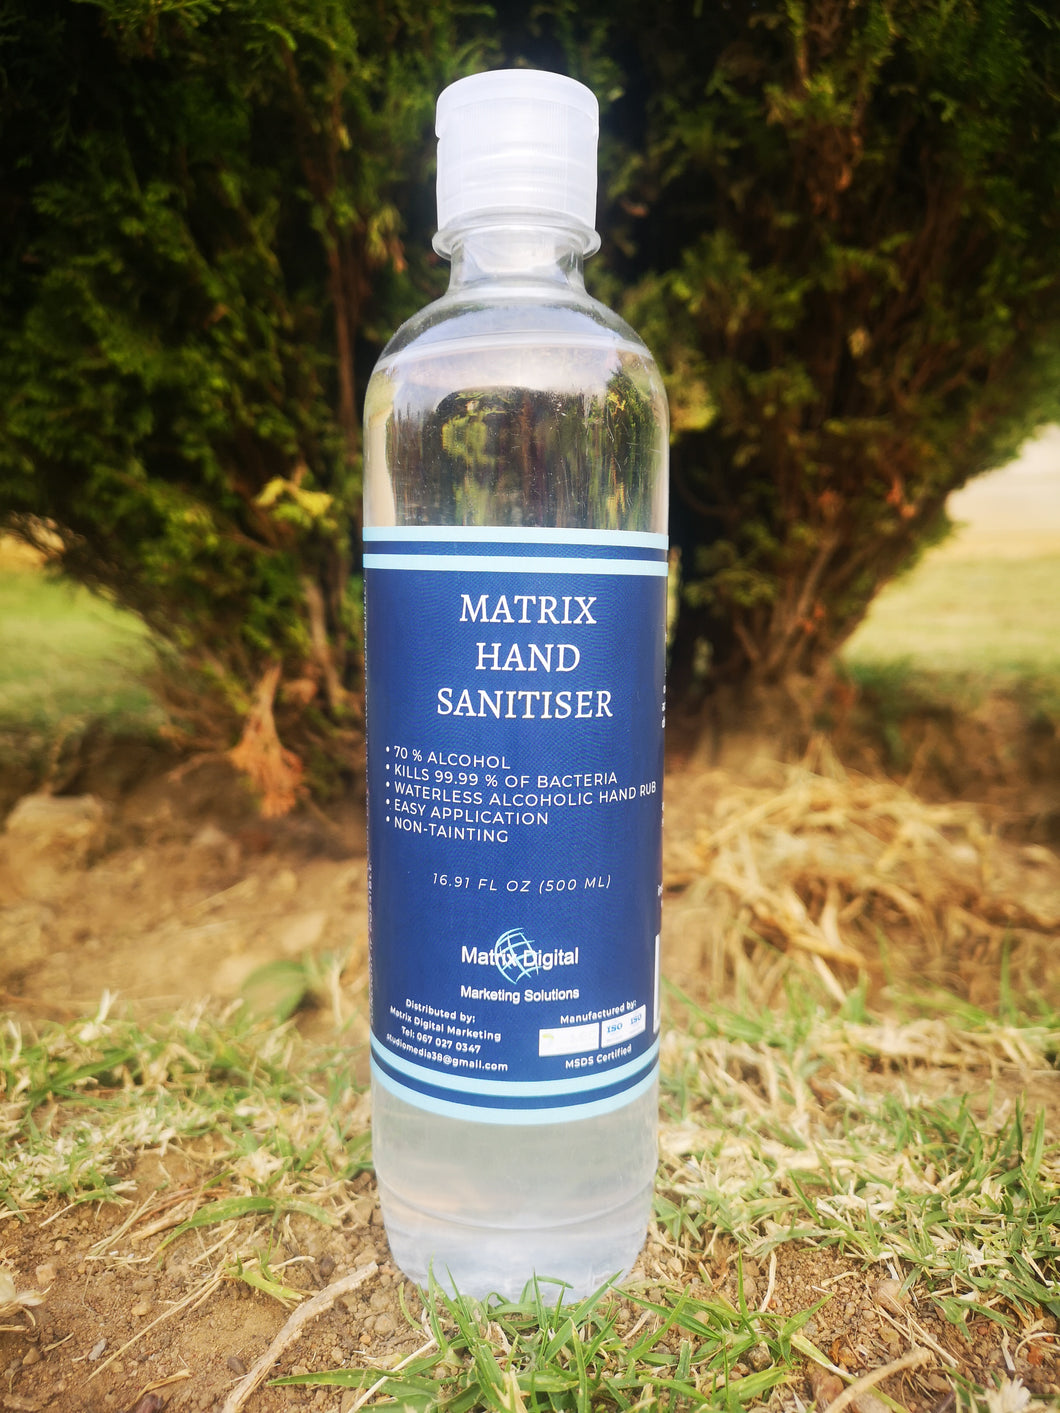 500ml Matrix Hand Sanitiser - 70% Alcohol